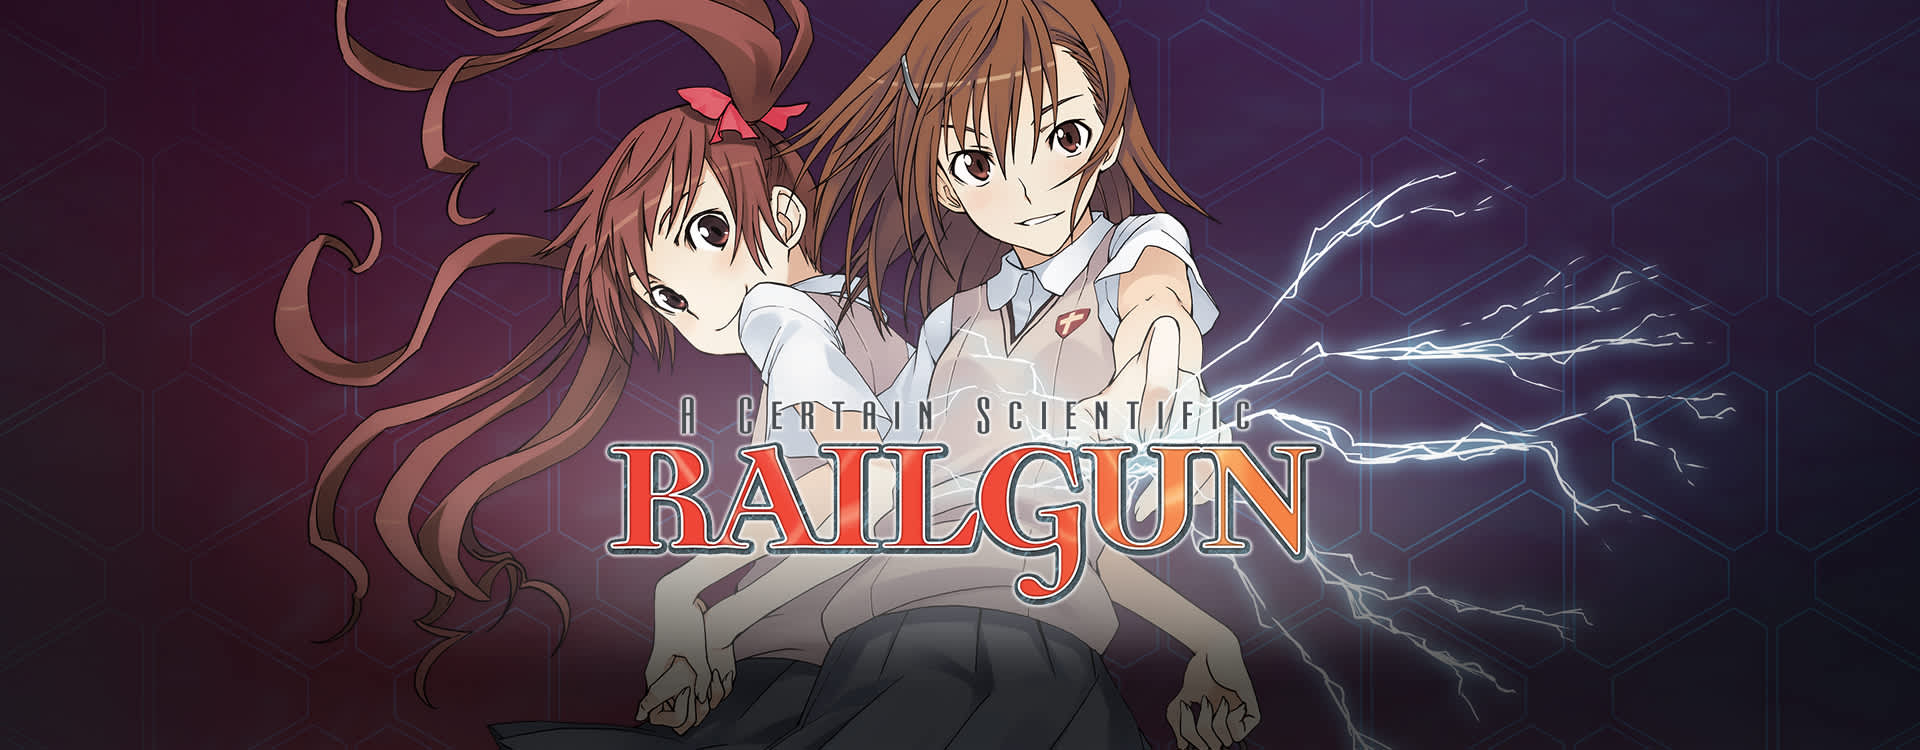 FUNimation Railgun Anime Site (English)